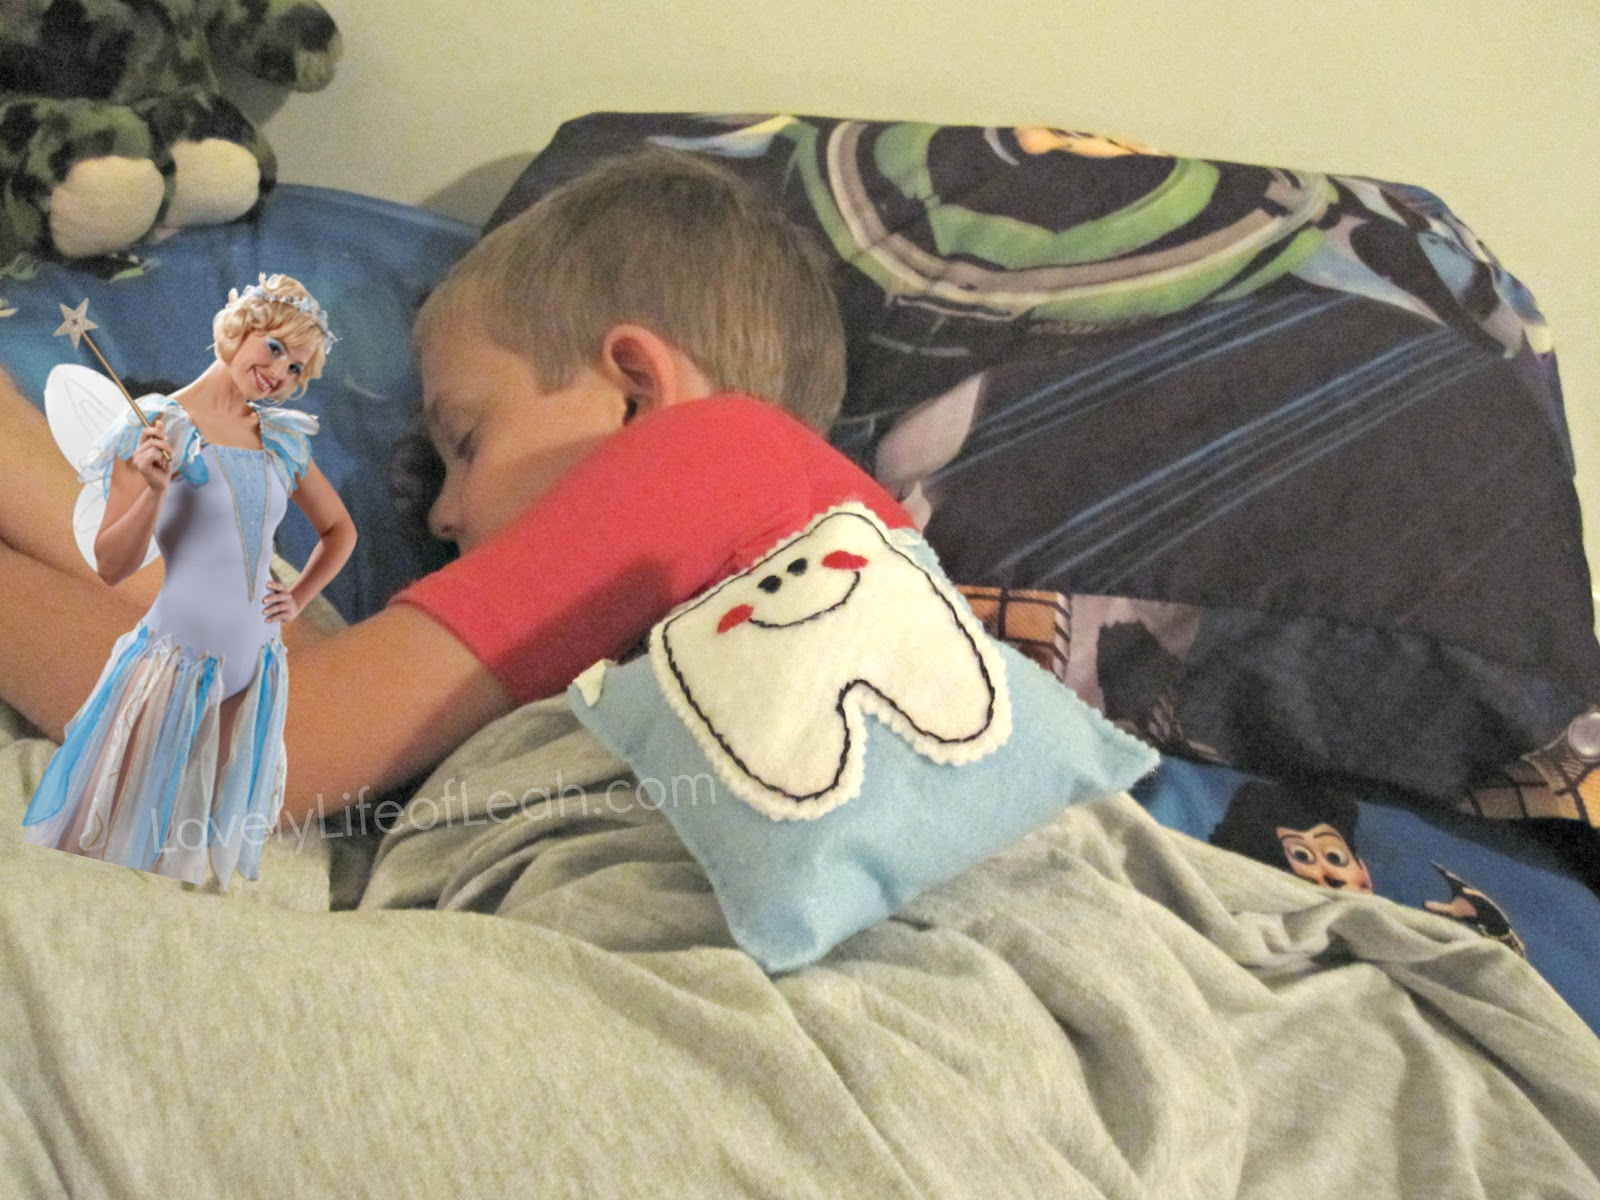 Real Tooth Fairy Images - Reverse Search